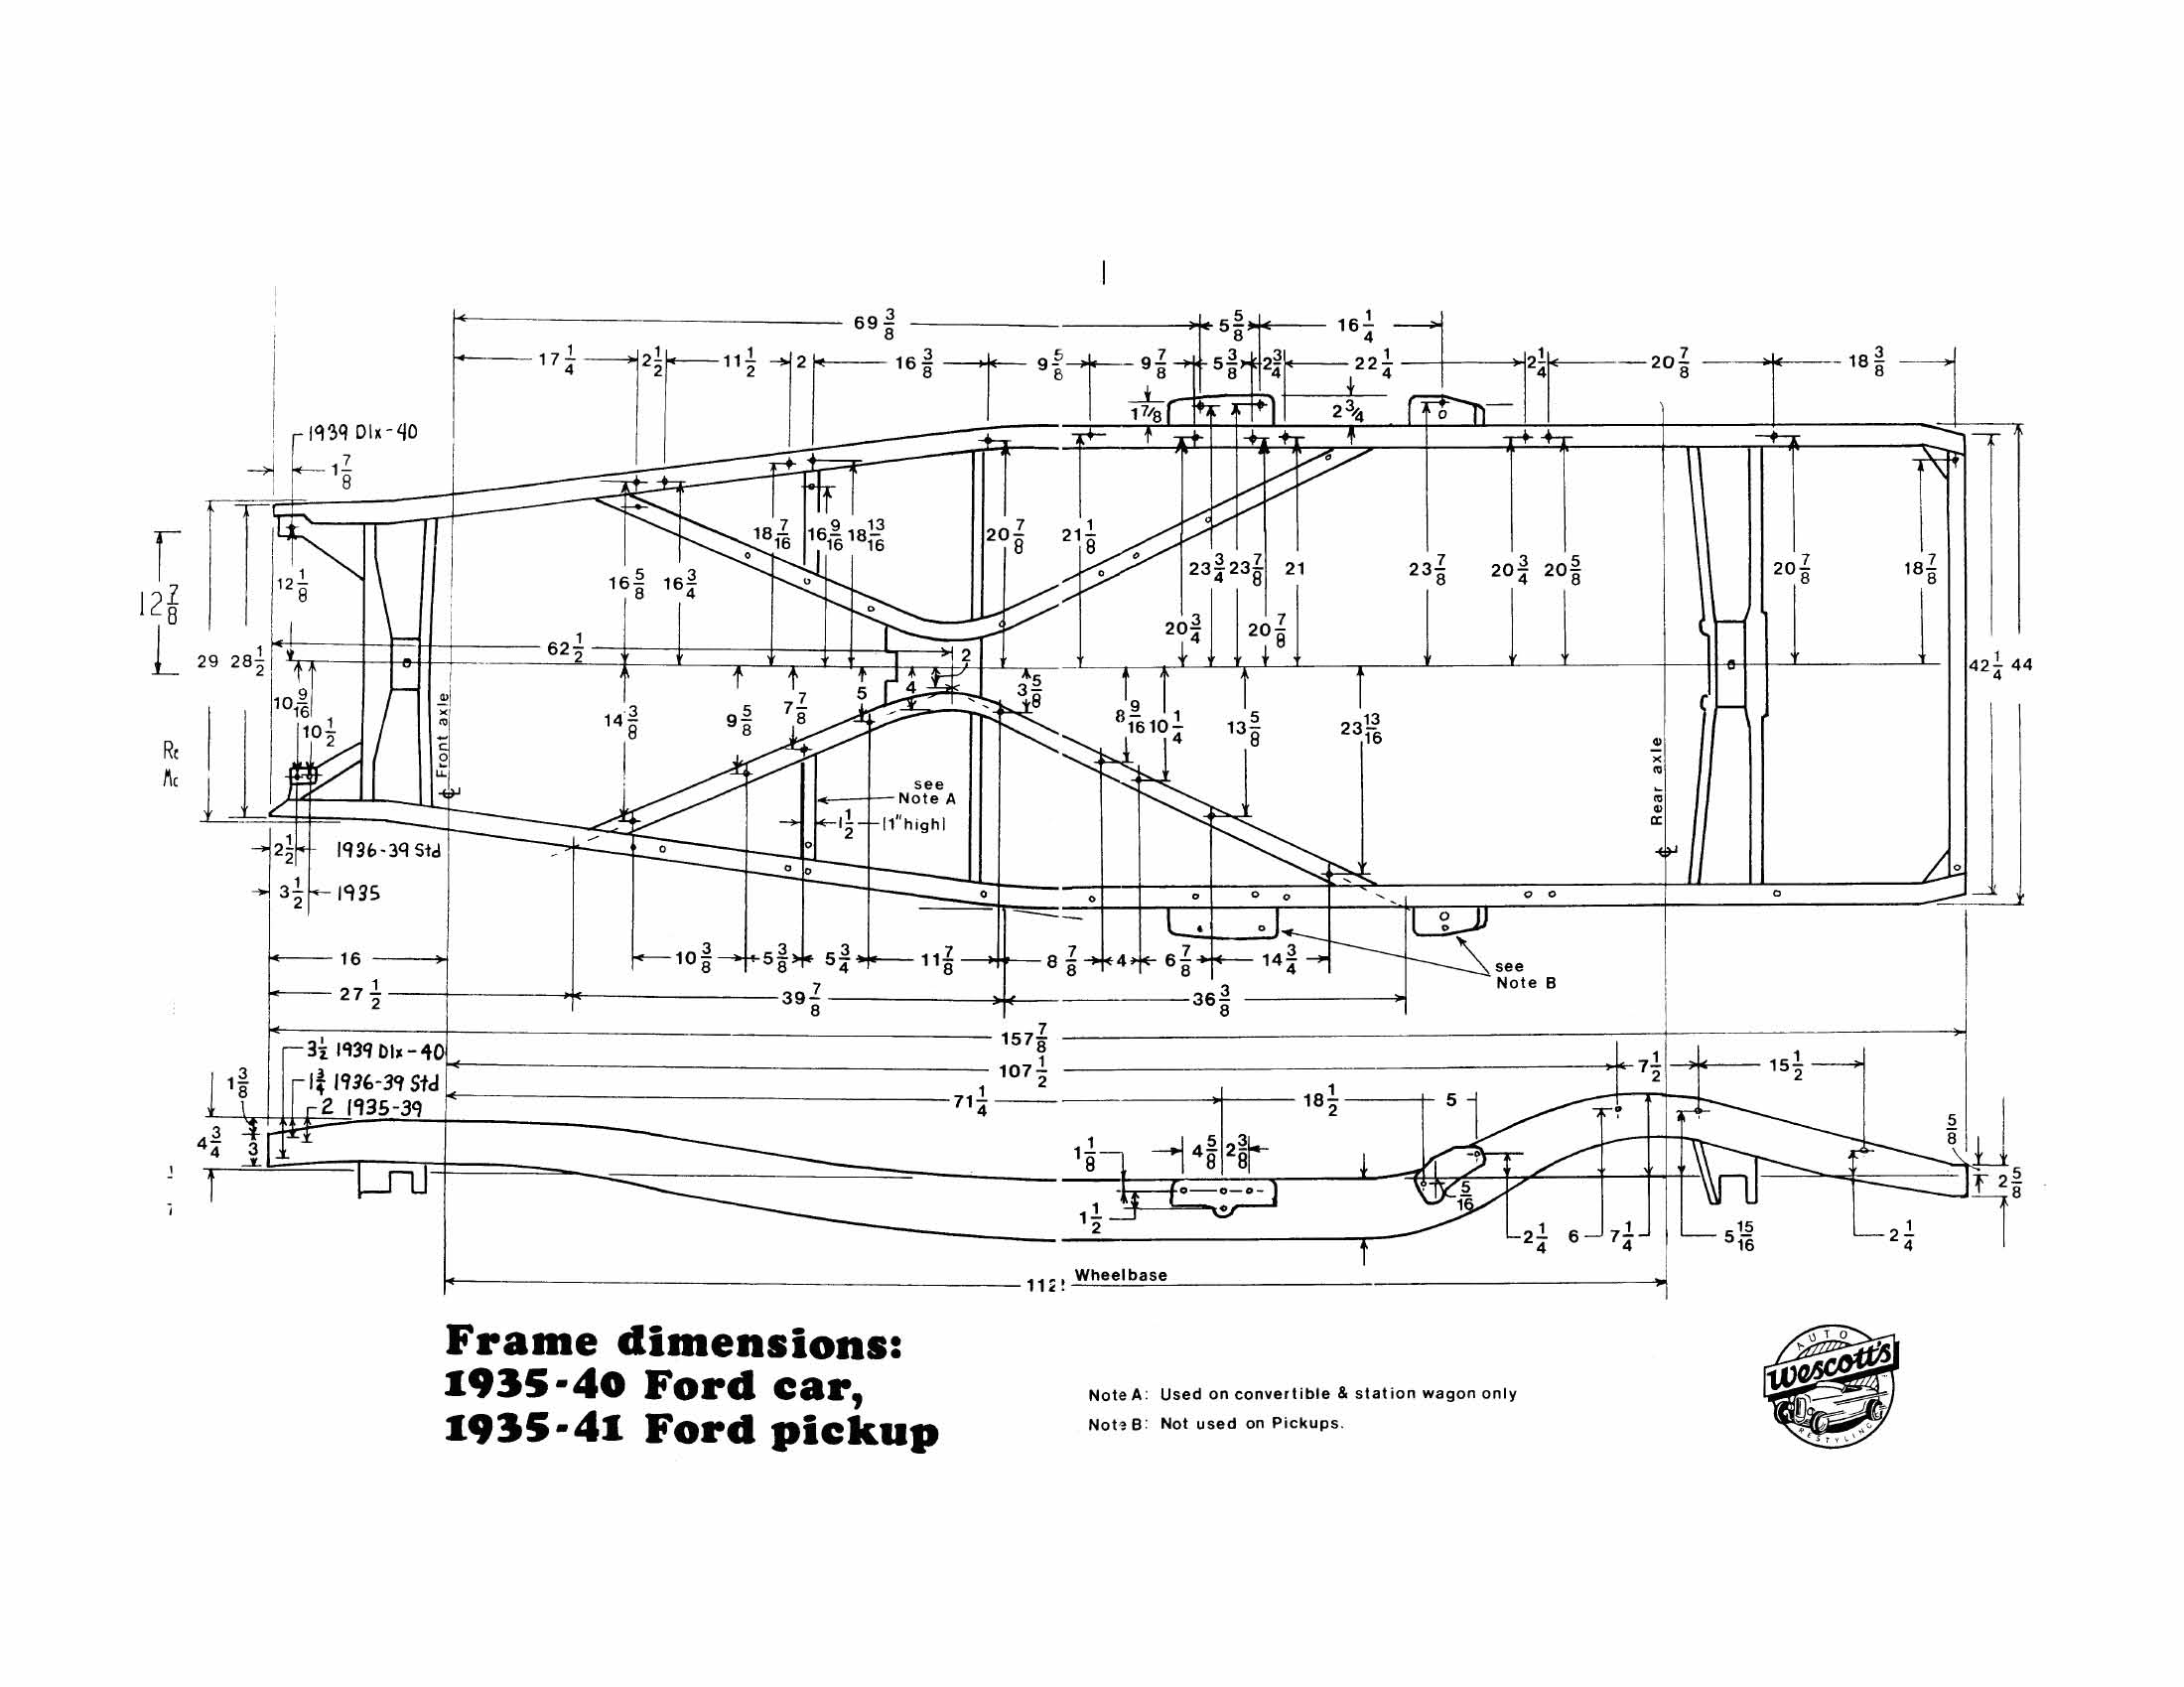 1941 Chevy Special Deluxe Wiring Diagram likewise 979038 48 50 F1 Front Axle Location as well Carburetors likewise 127qi 1946 Ford 6v Positive Ground 12v Ton Wire Diagram additionally 1957 Cadillac Brougham Doors Wiring Diagrams. on 1946 chevy wiring diagram